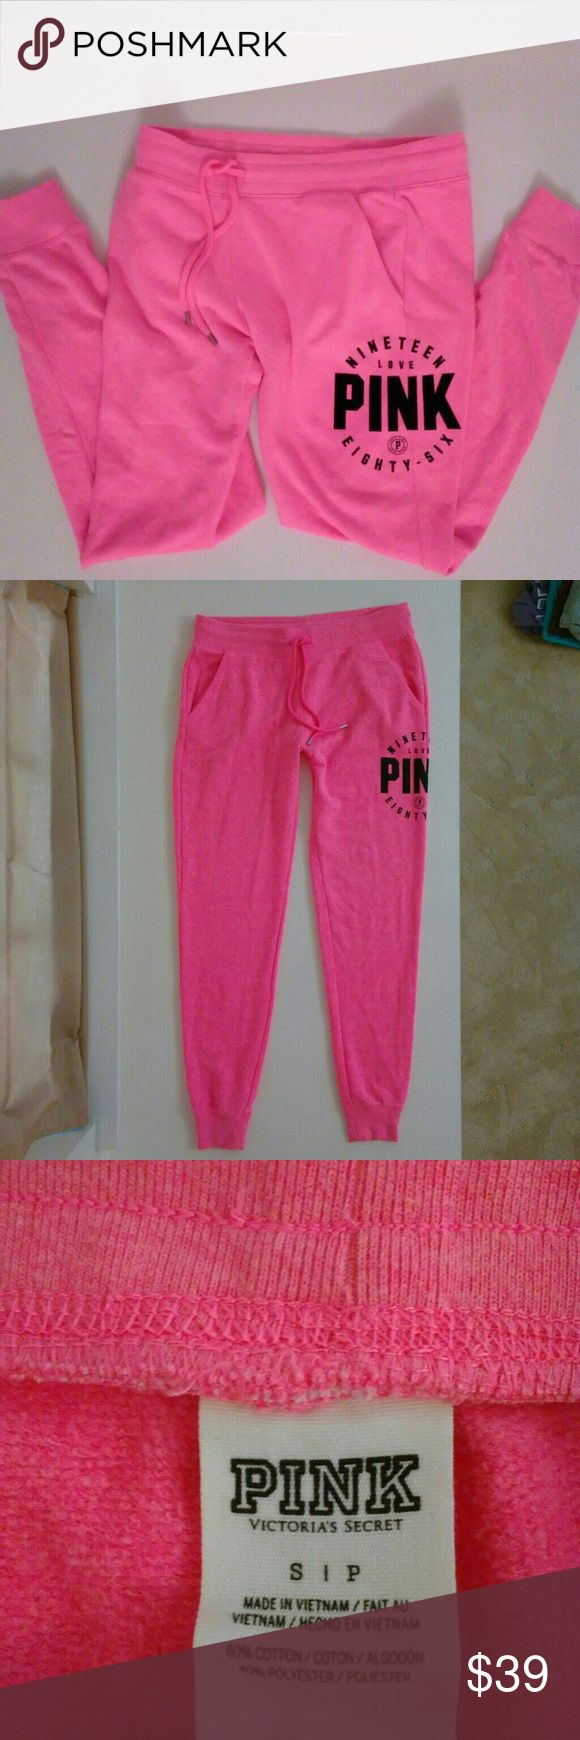 Victoria's Secret PINK Sweat Pants Joggers Lounge Victoria's Secret PINK Sweat Pants Lounge Pajama Bottoms Gym College   Womens Size Small   Lovely shade of pink with PINK logo at the left outer thigh area.   No flaws - no pilling, no fading; these look as if they have never been worn. PINK Victoria's Secret Pants Track Pants & Joggers